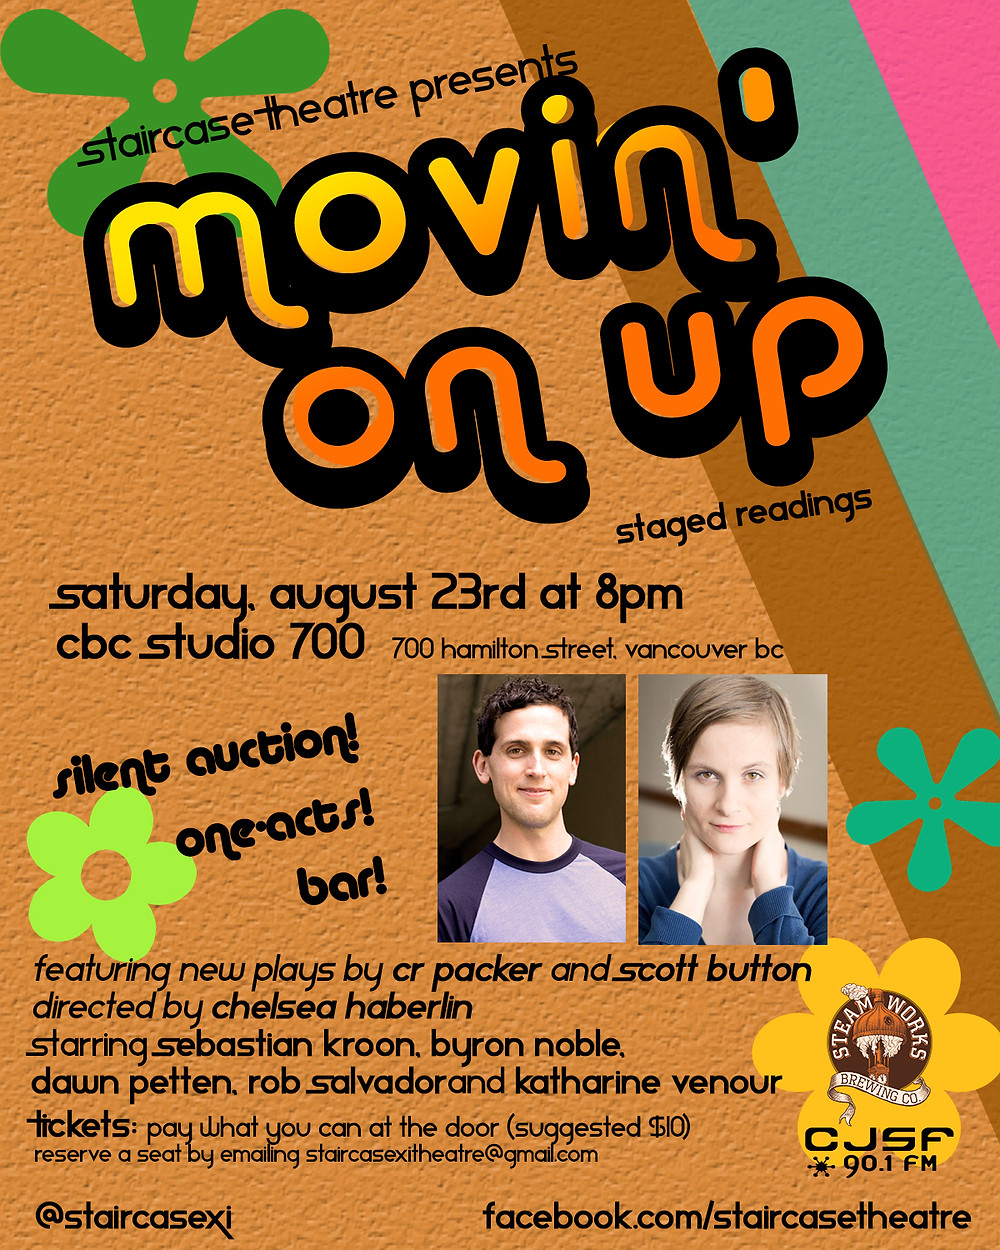 movin on up poster 08-15-14.jpg